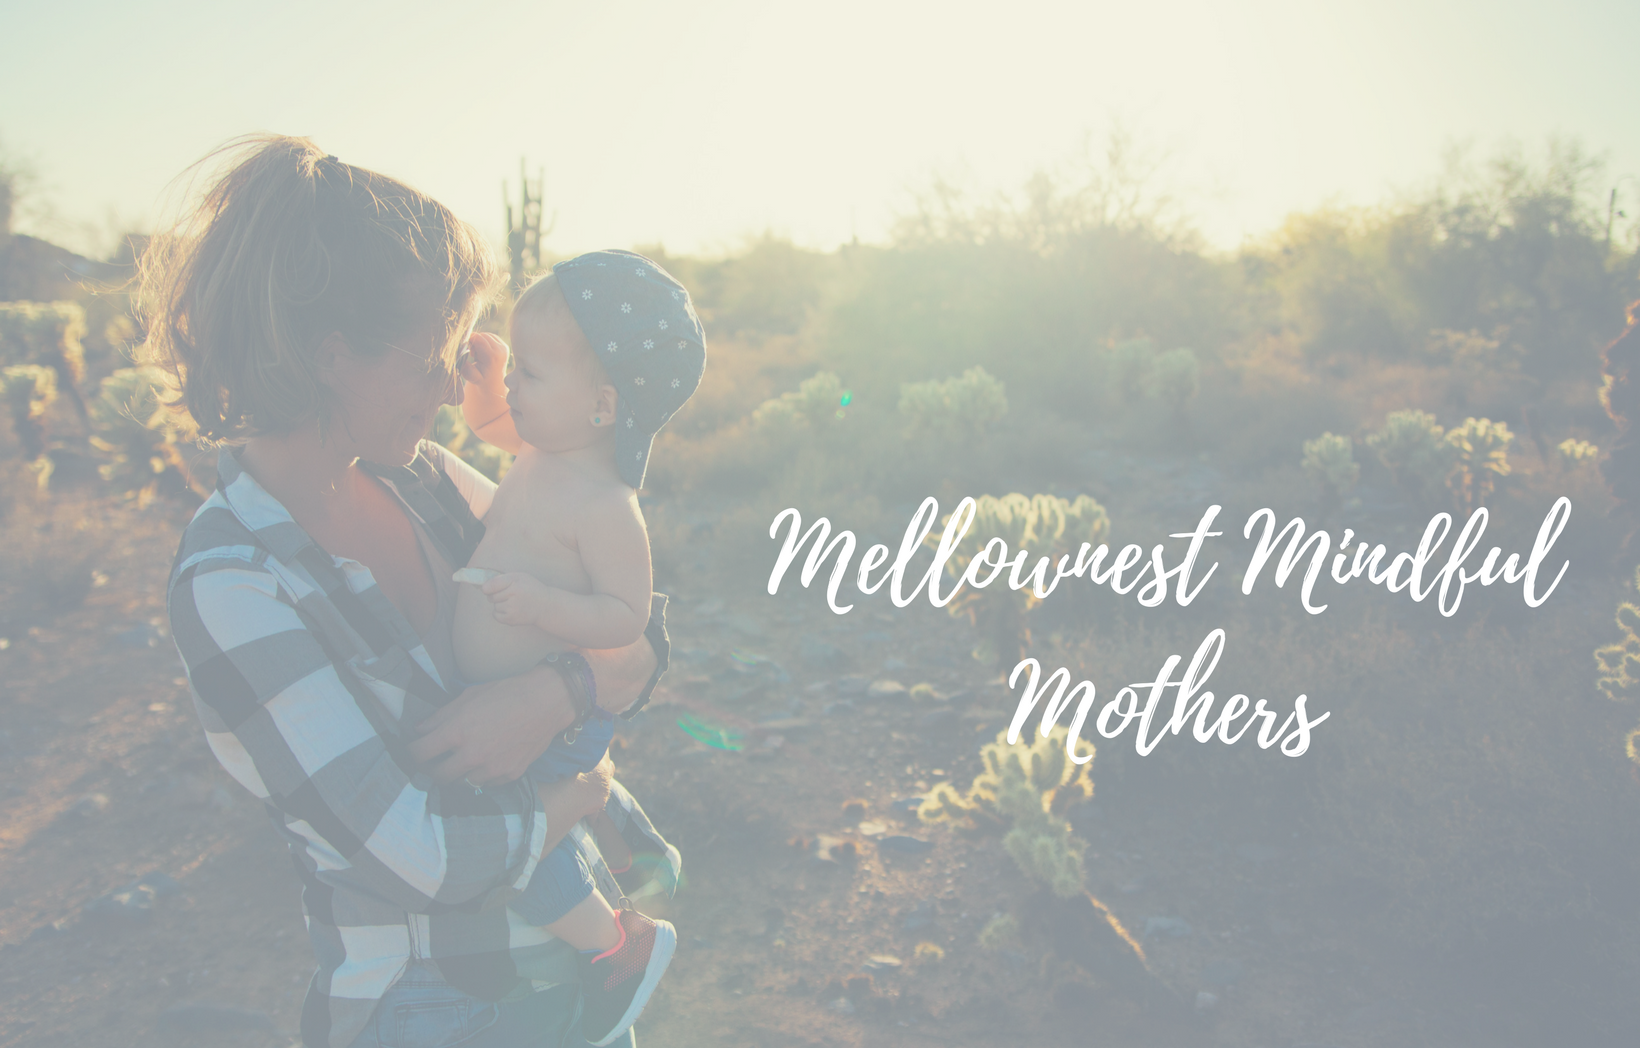 If you're a mother who wants to continue the conversation with a like-minded crowd, then join our 'Mellownest Mindful Mothers' group on Facebook.We'd love to have you with us. -